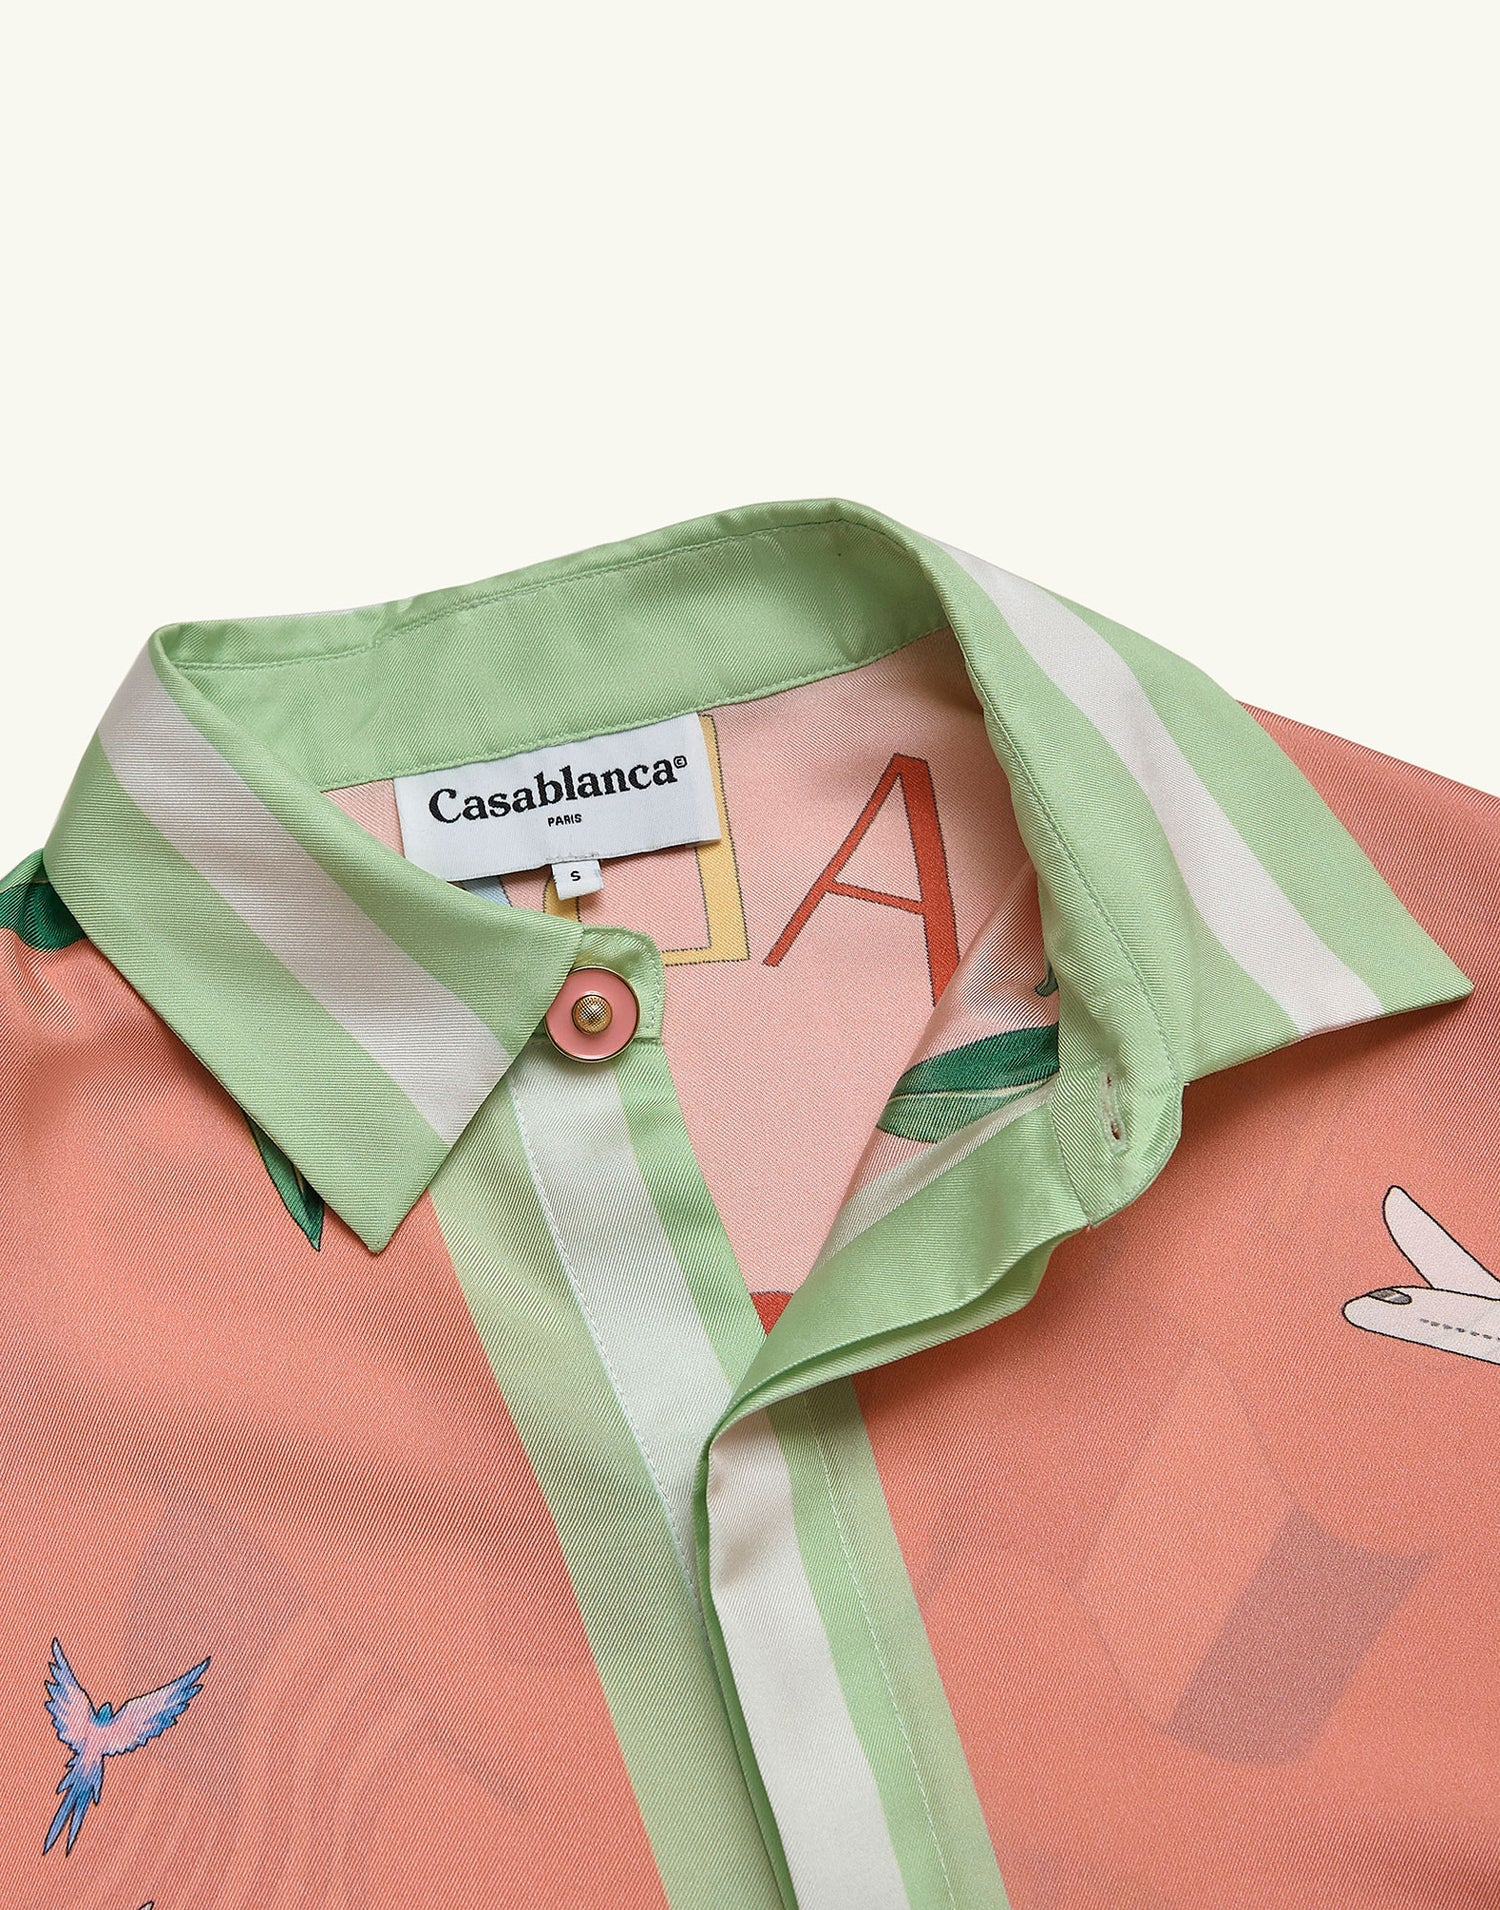 Casablanca Tennis club shirt Pink